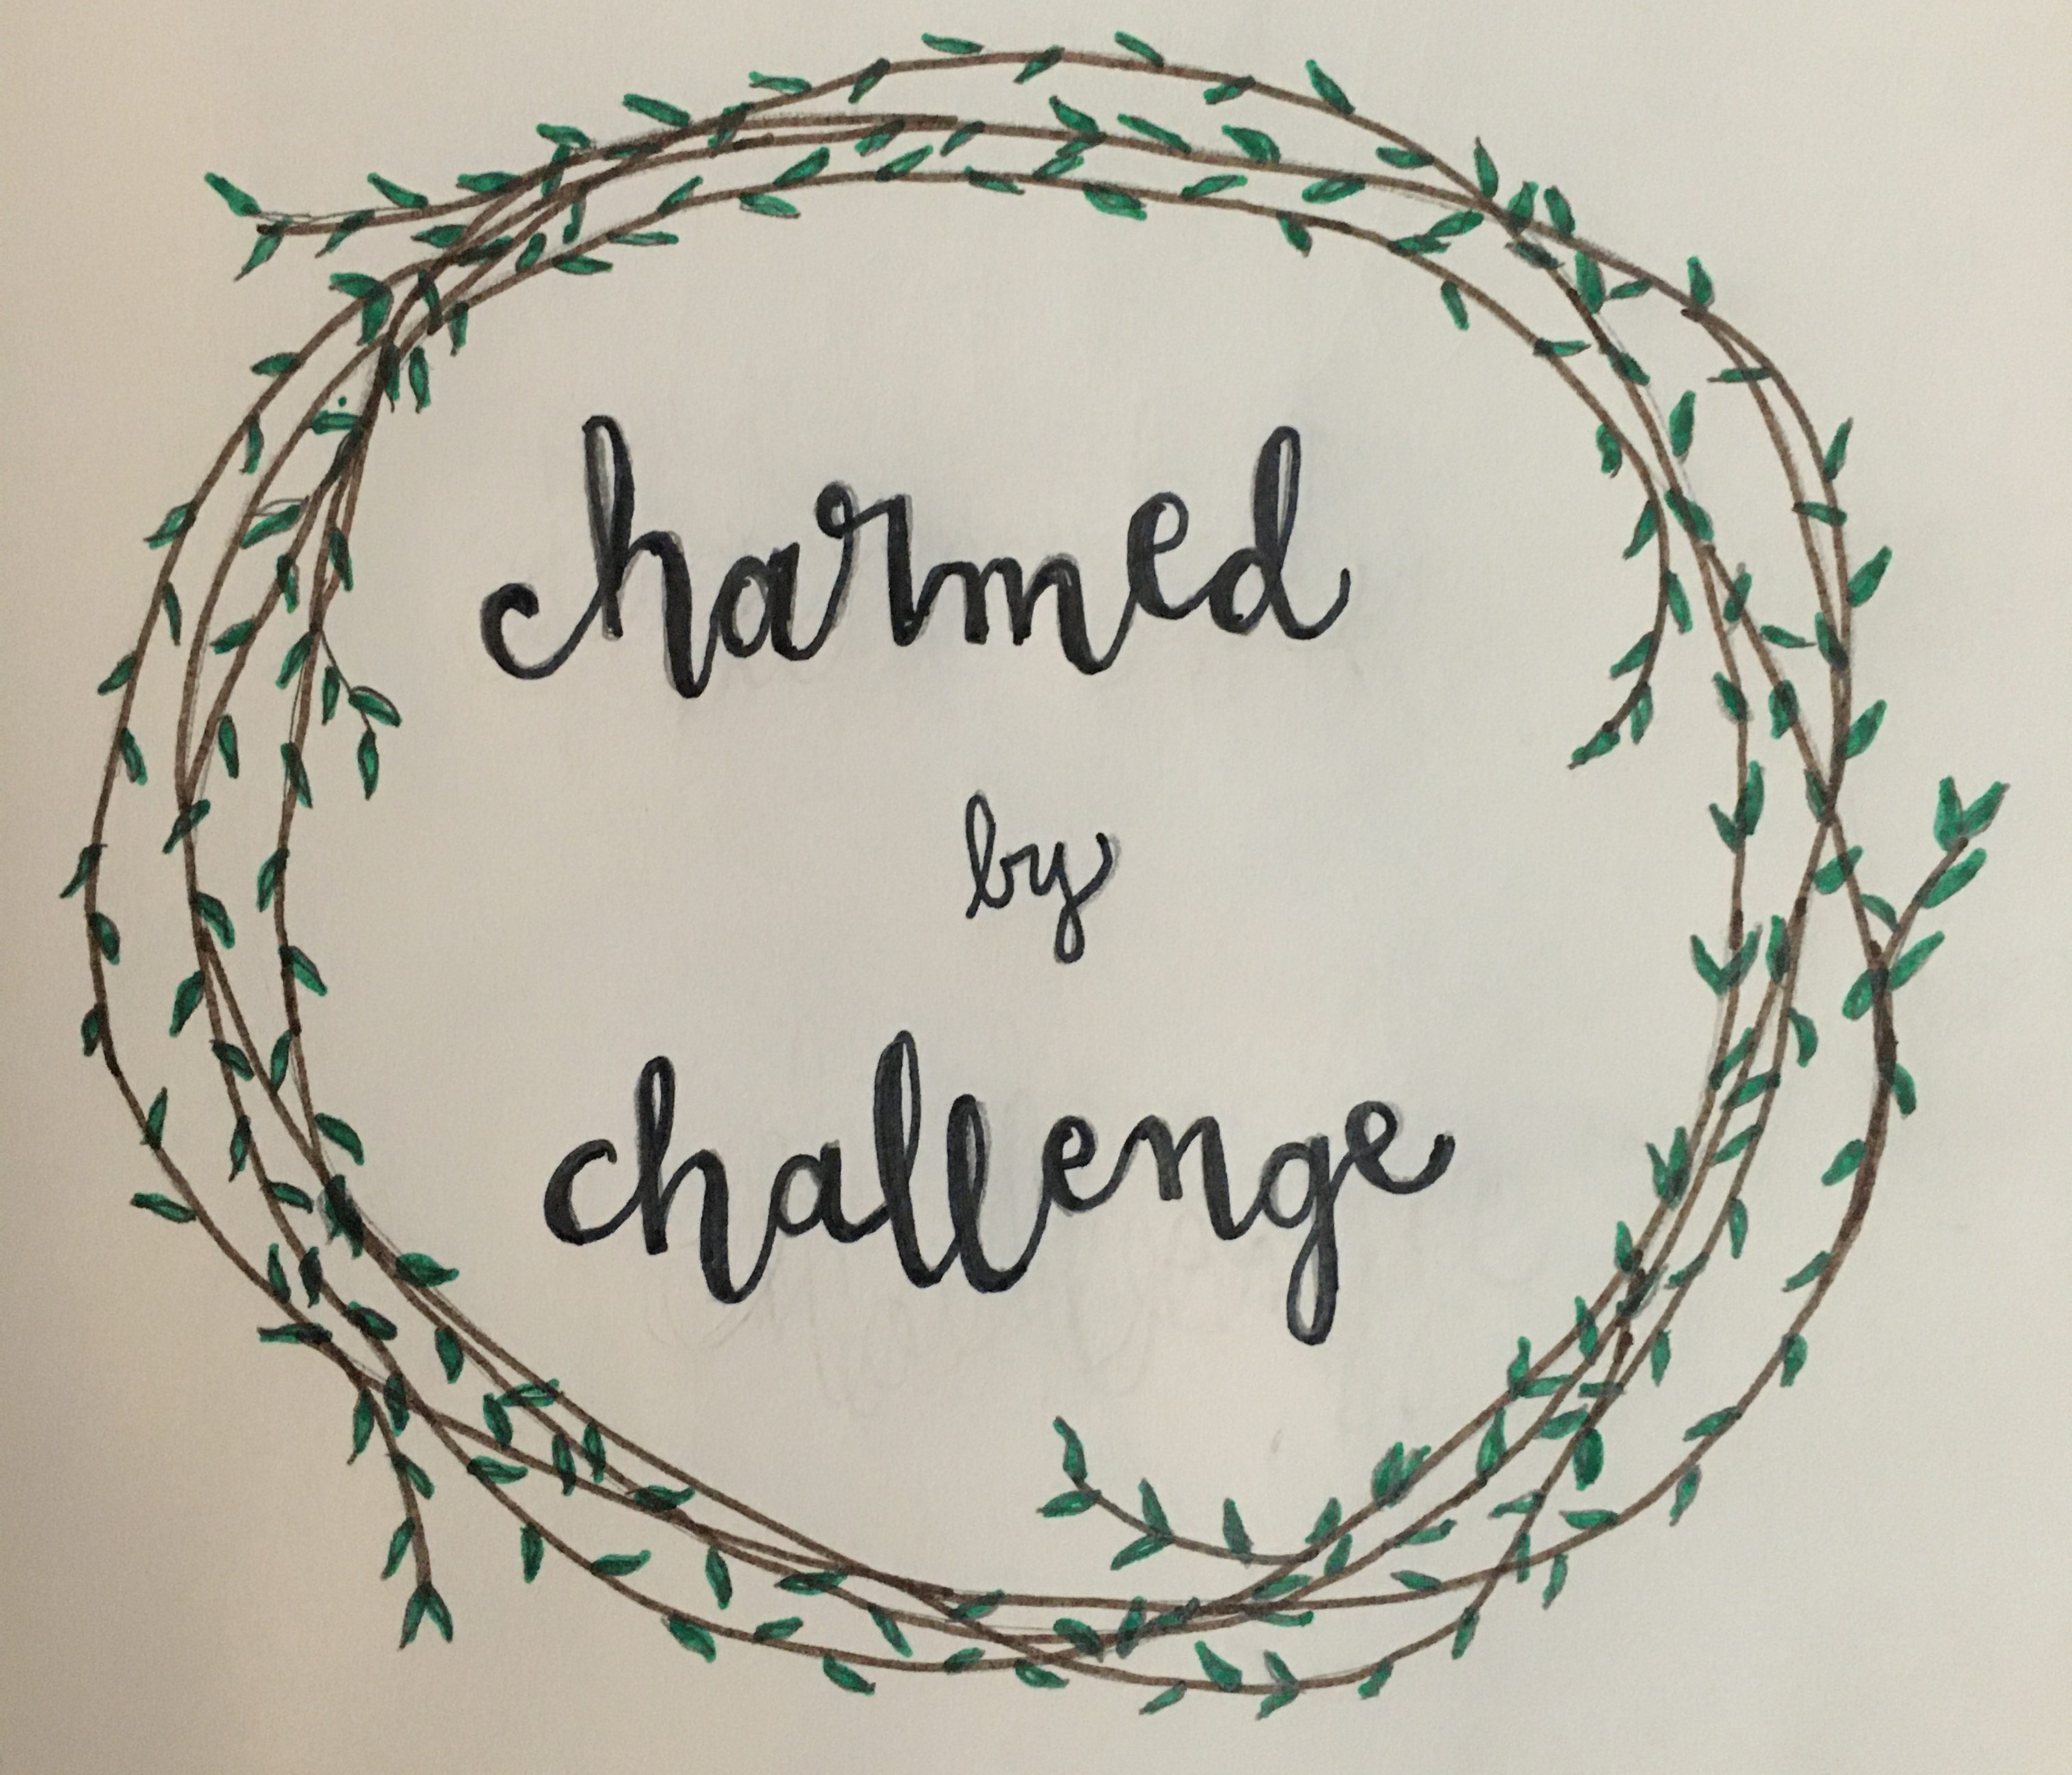 Charmed by Challenge